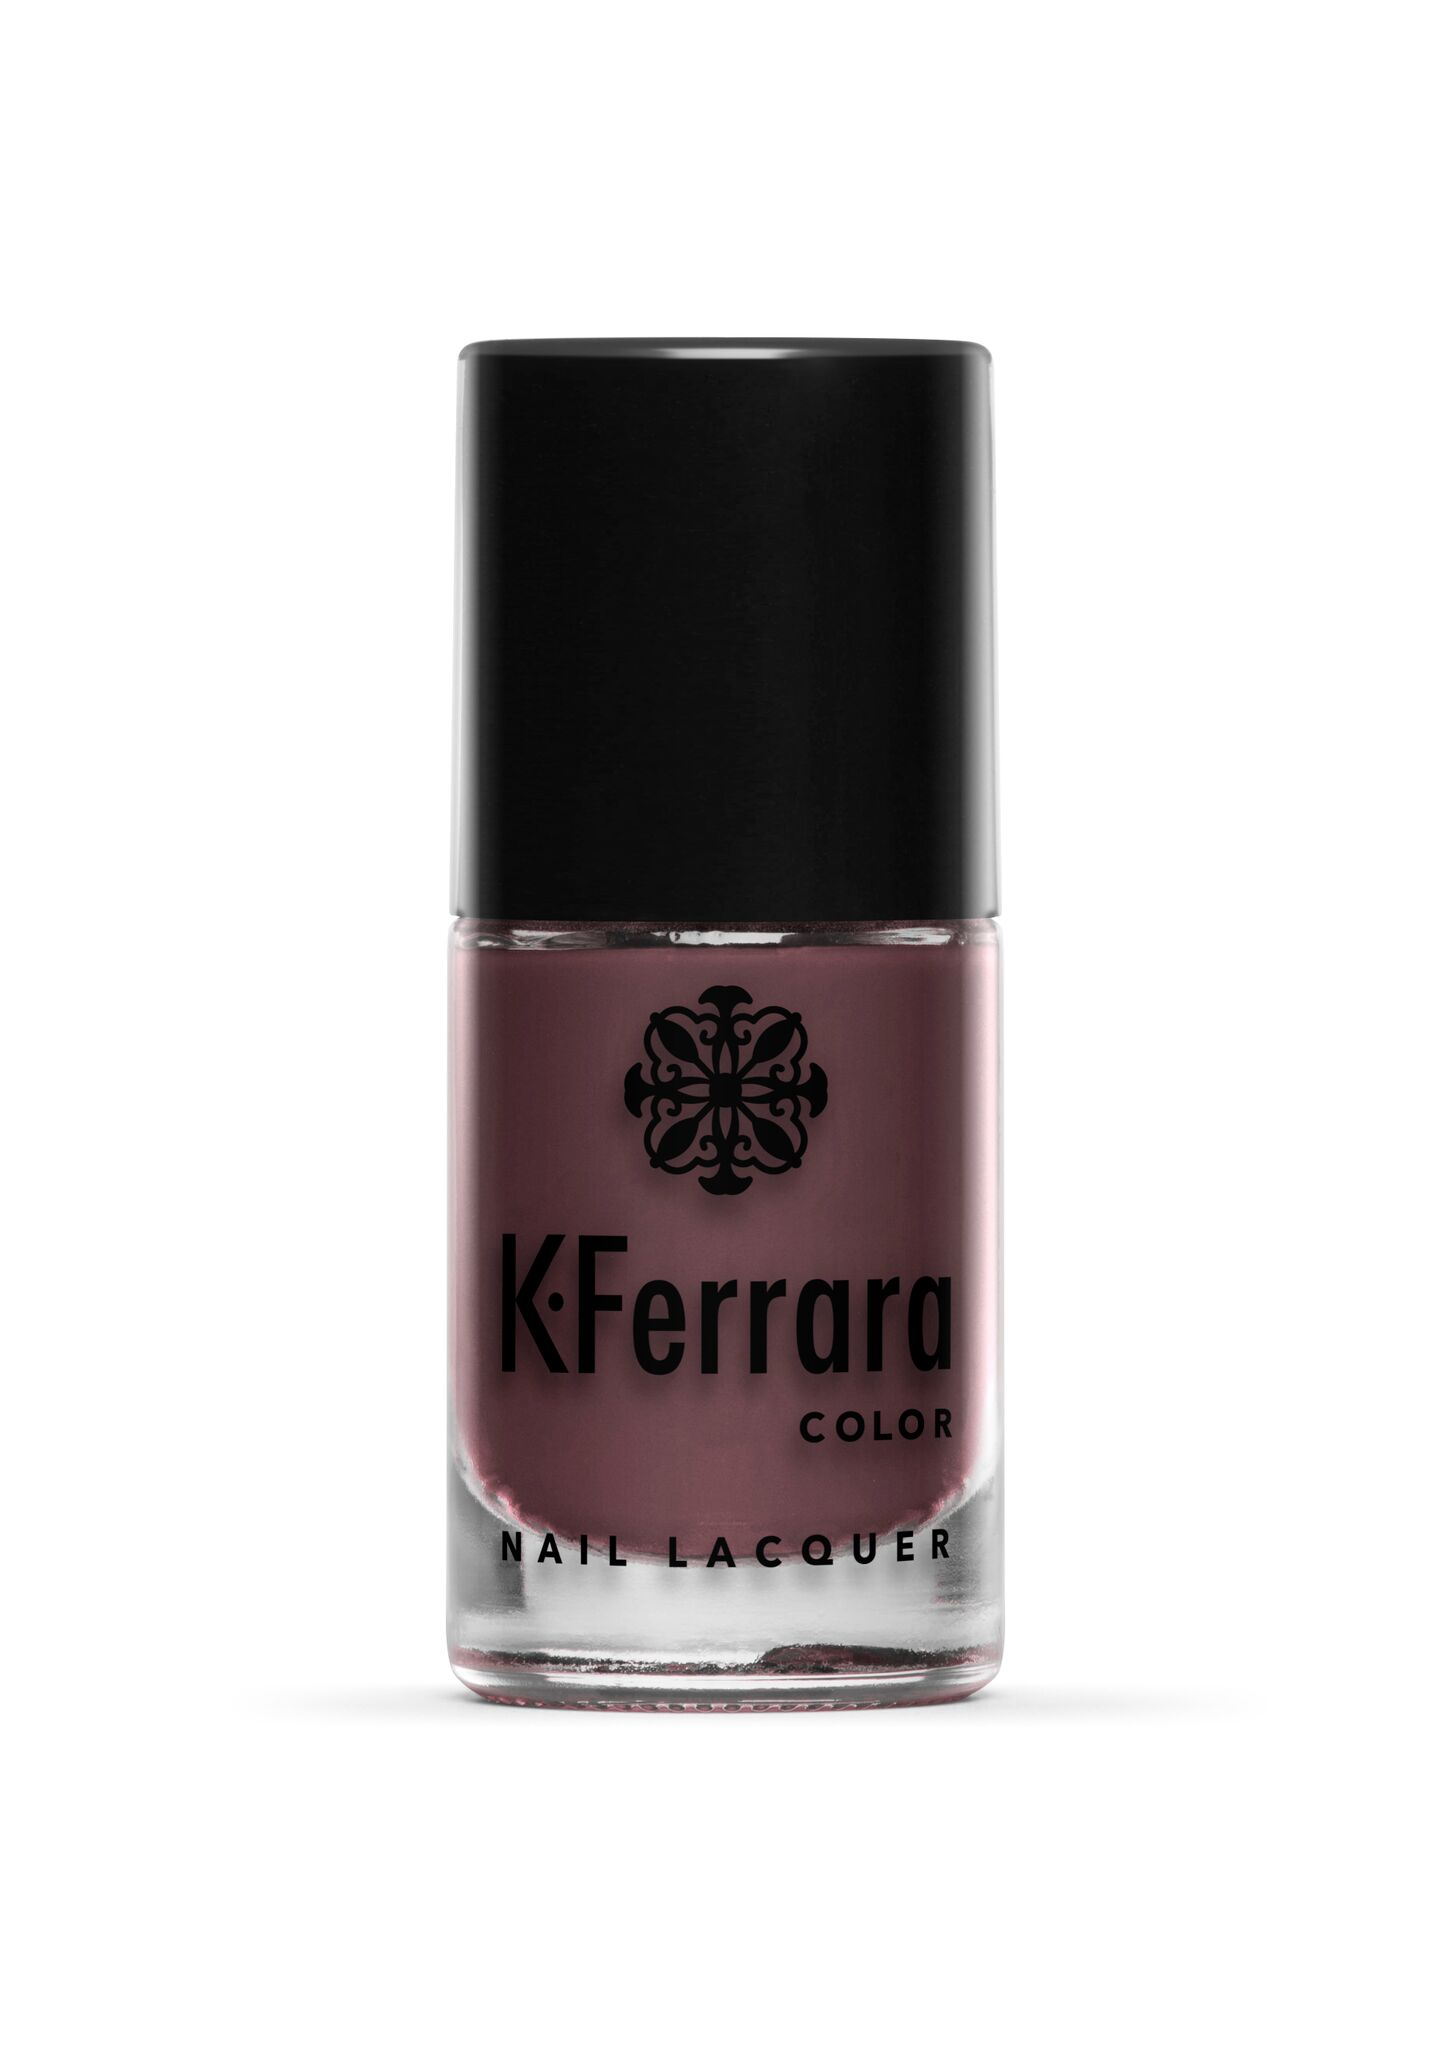 KFerrara Bottle Kathryn.jpg